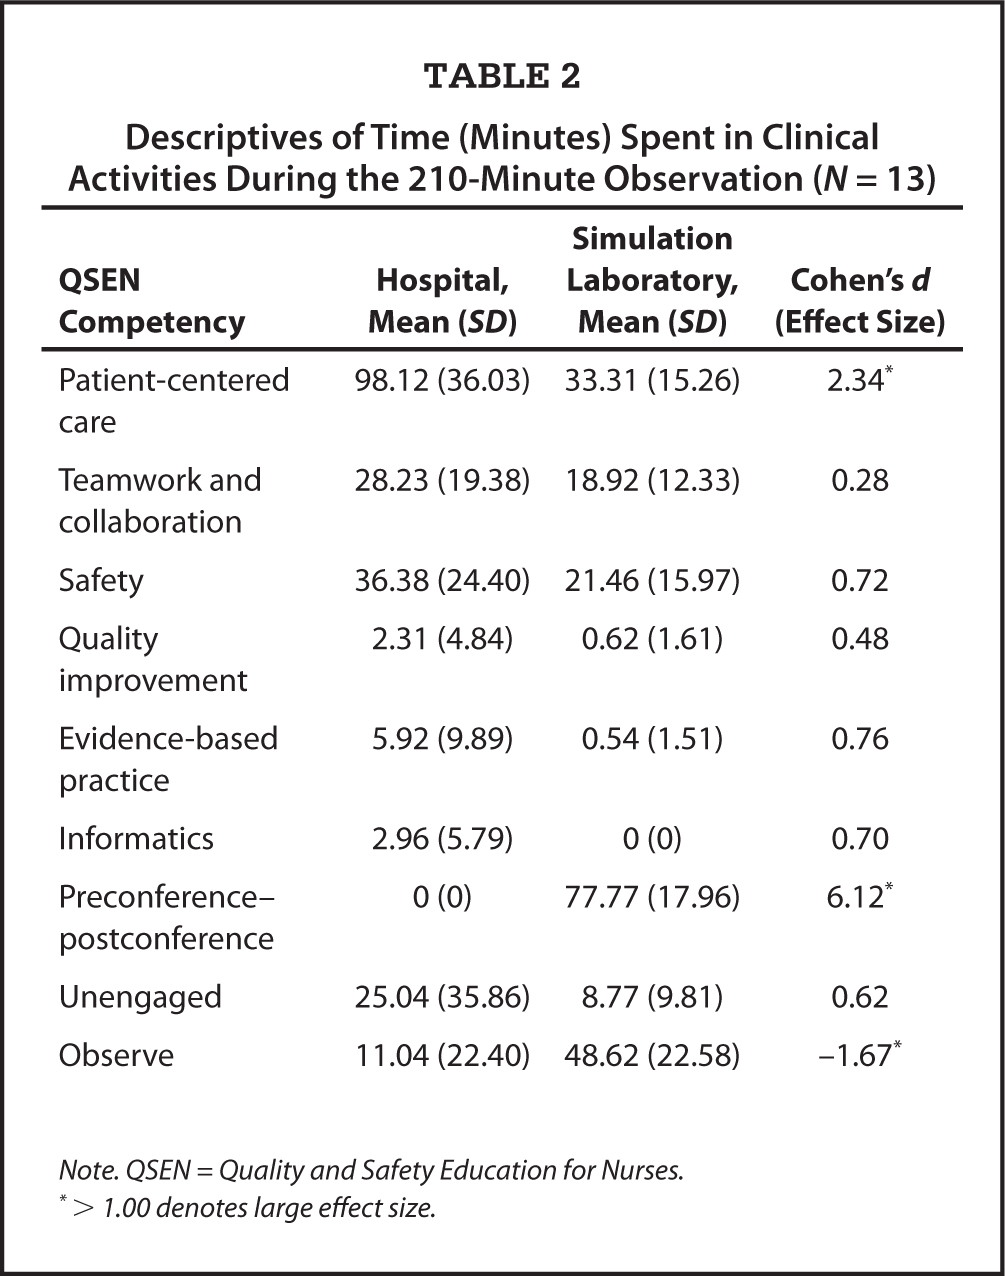 Descriptives of Time (Minutes) Spent in Clinical Activities During the 210-Minute Observation (N = 13)